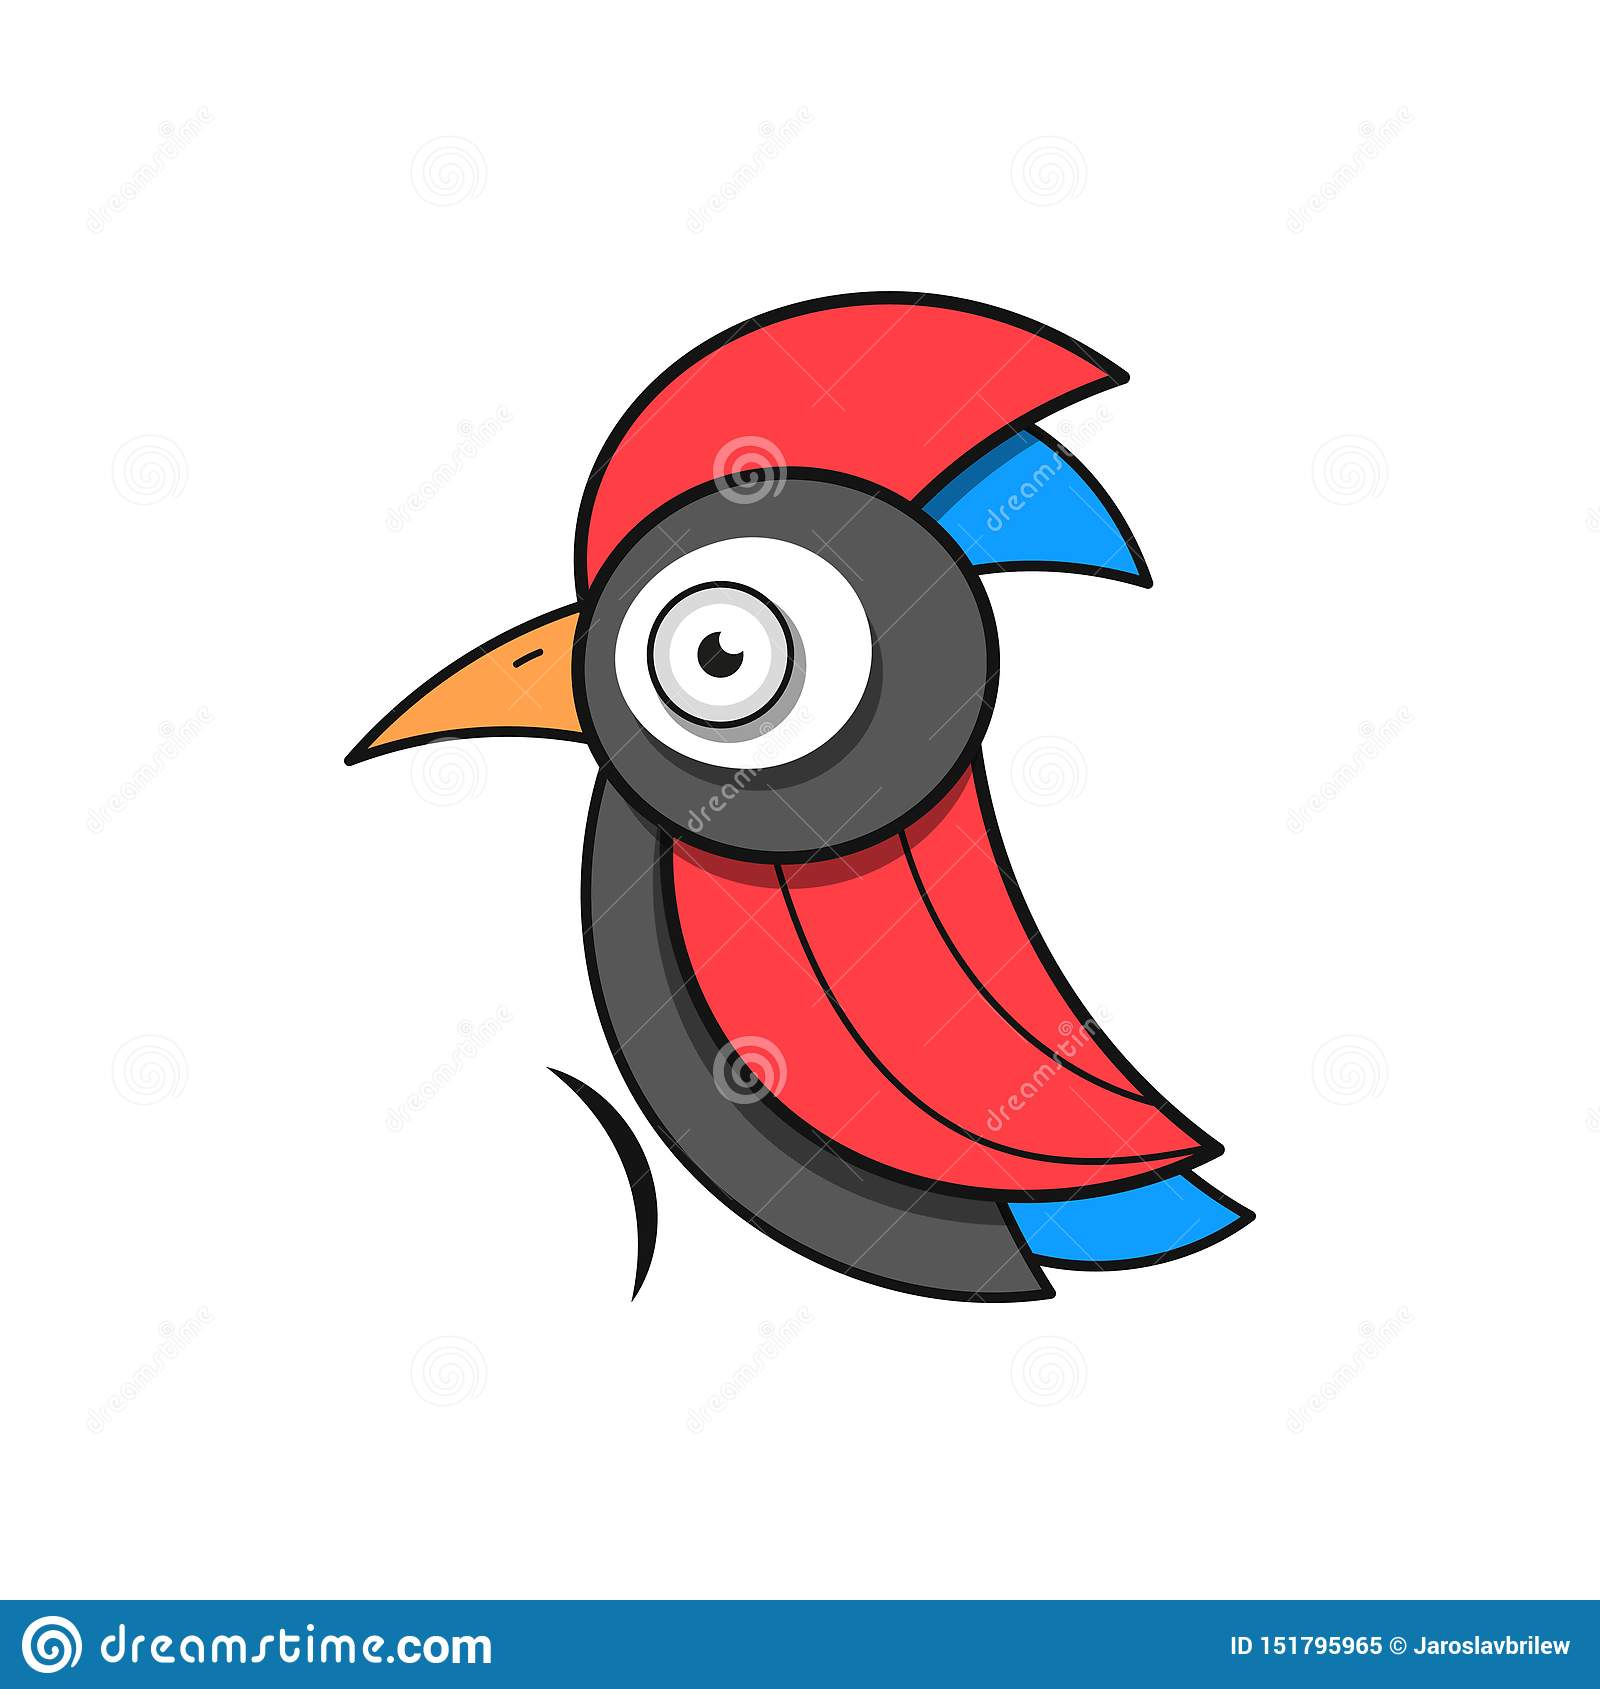 Specht Bird Animal Abstract Vector Template Zoo Wildlife Business Icon Nature Company